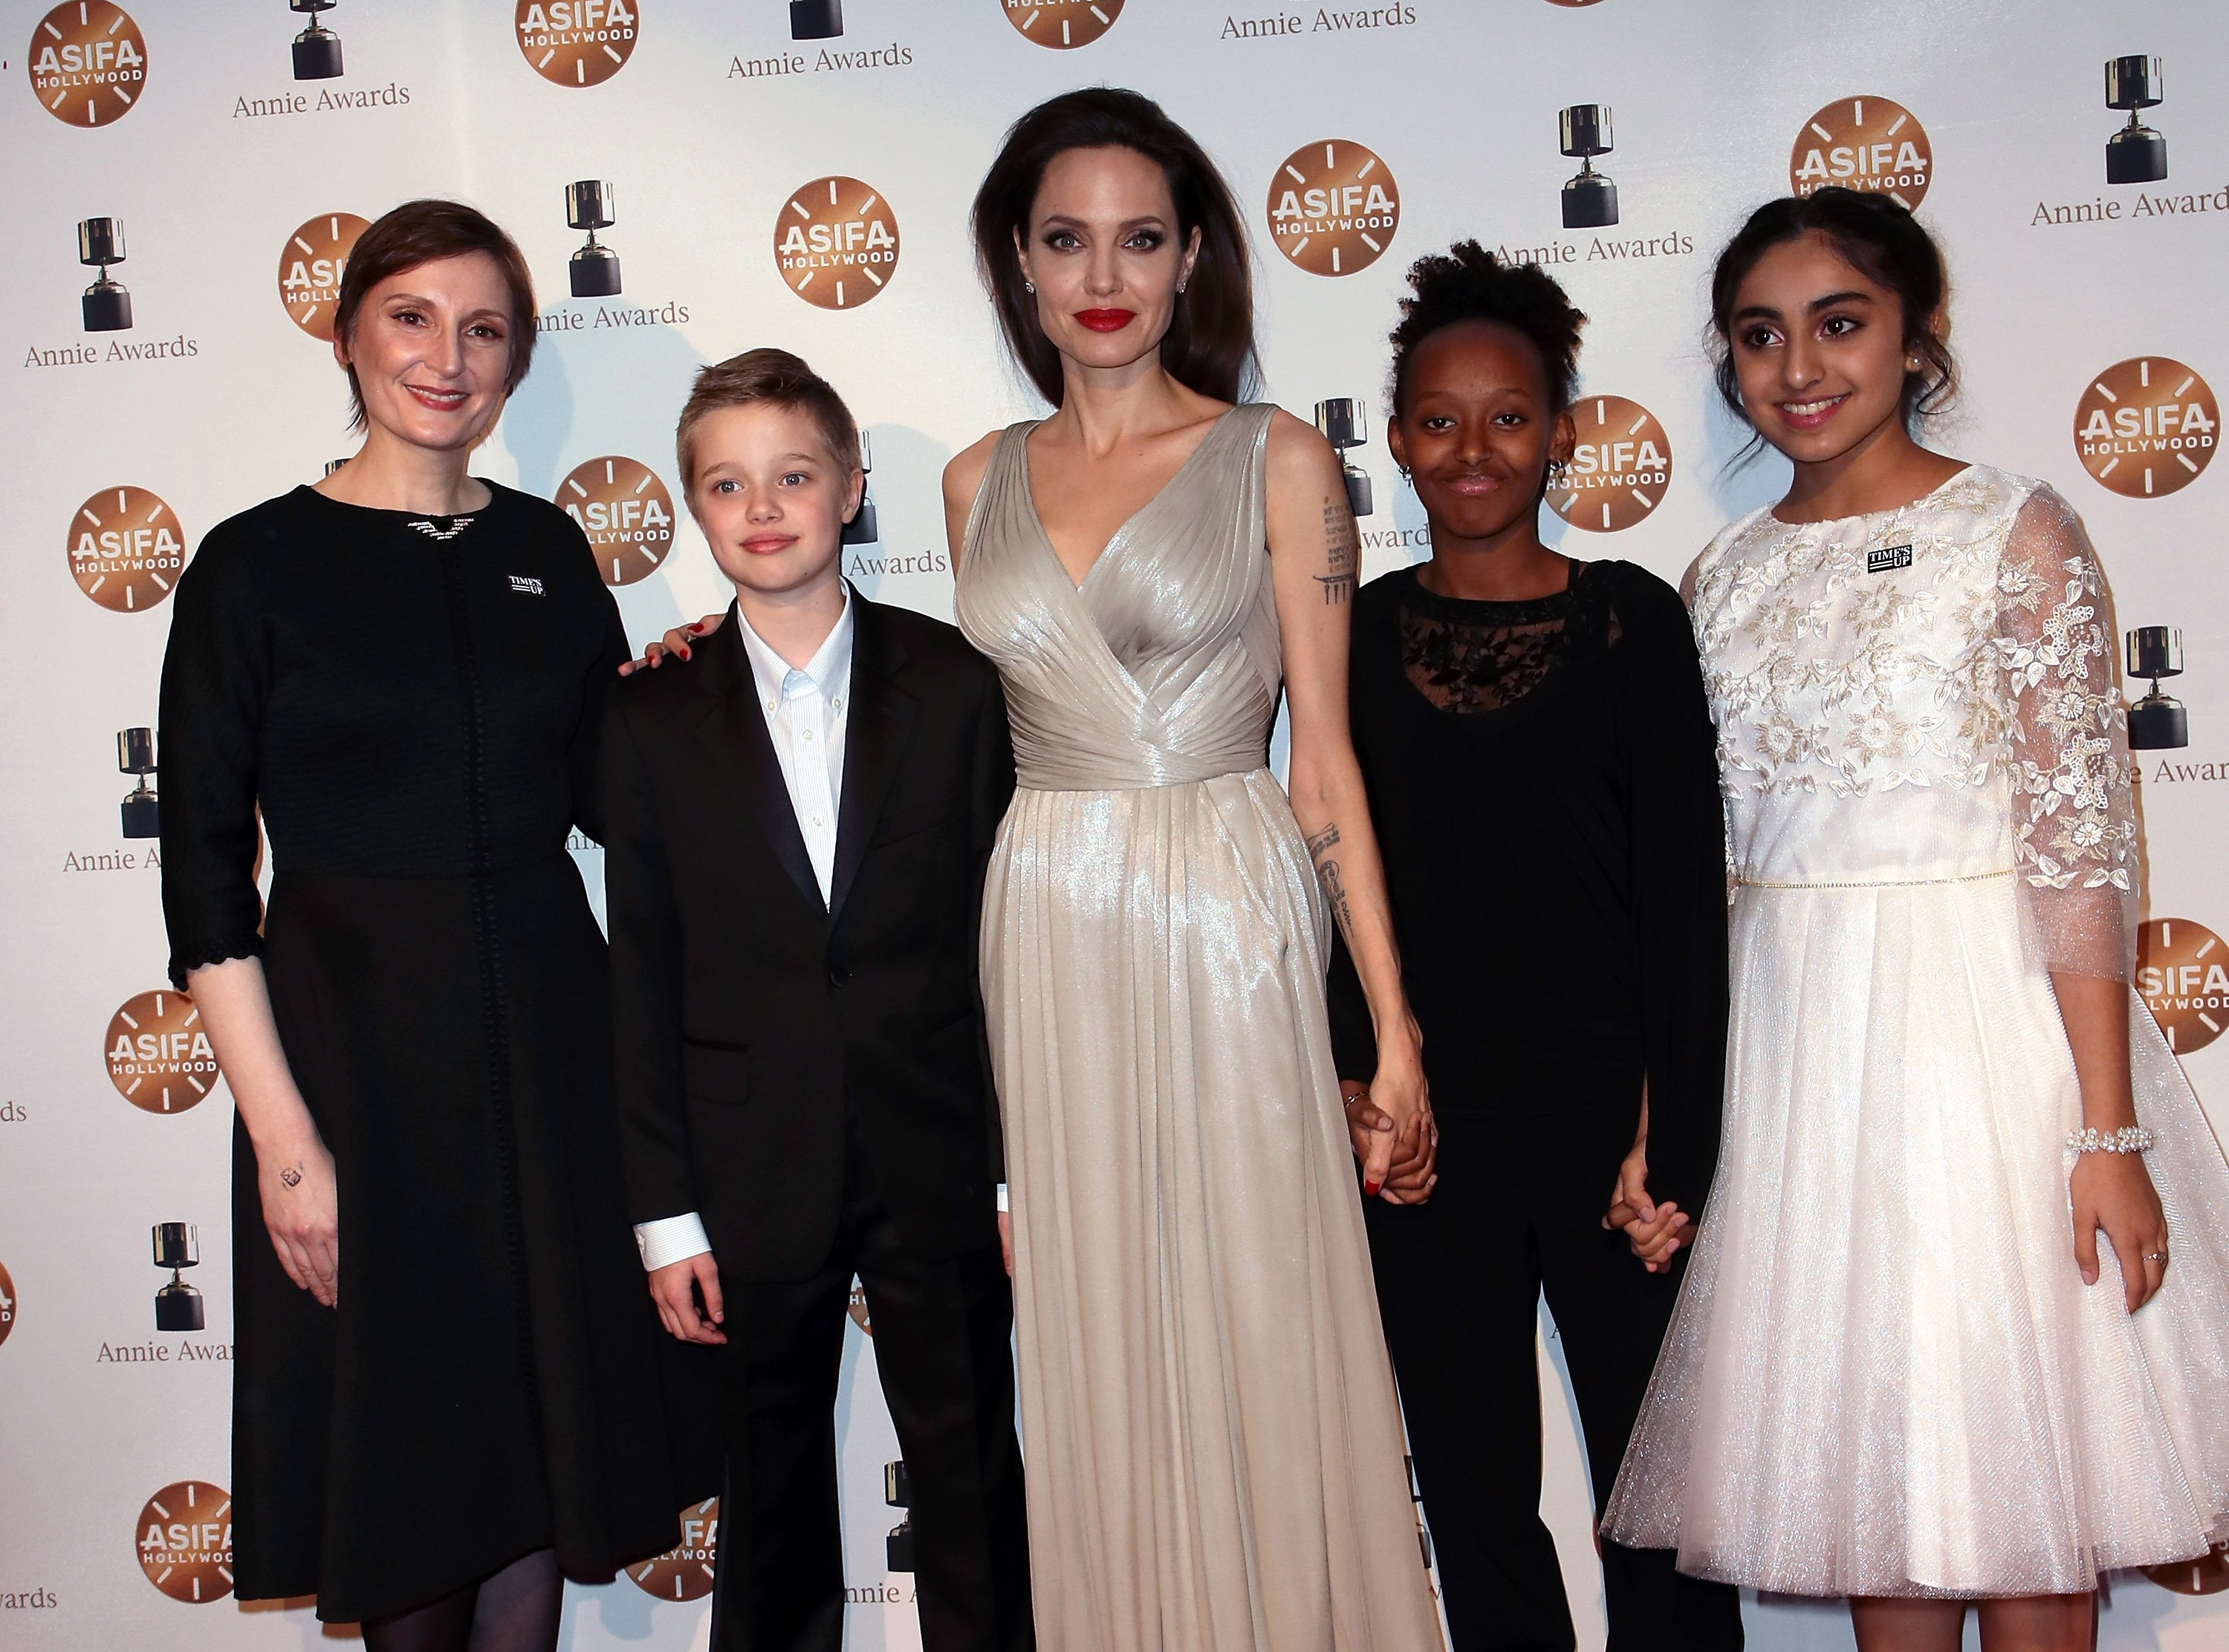 Director Nora Twomey, Shiloh Nouvel Jolie-Pitt, Angelina Jolie, Zahara Marley Jolie-Pitt and actress Saara Chaudry attend the 45th Annual Annie Awards in Los Angeles, California on February 3, 2018 | Photo: Getty Images